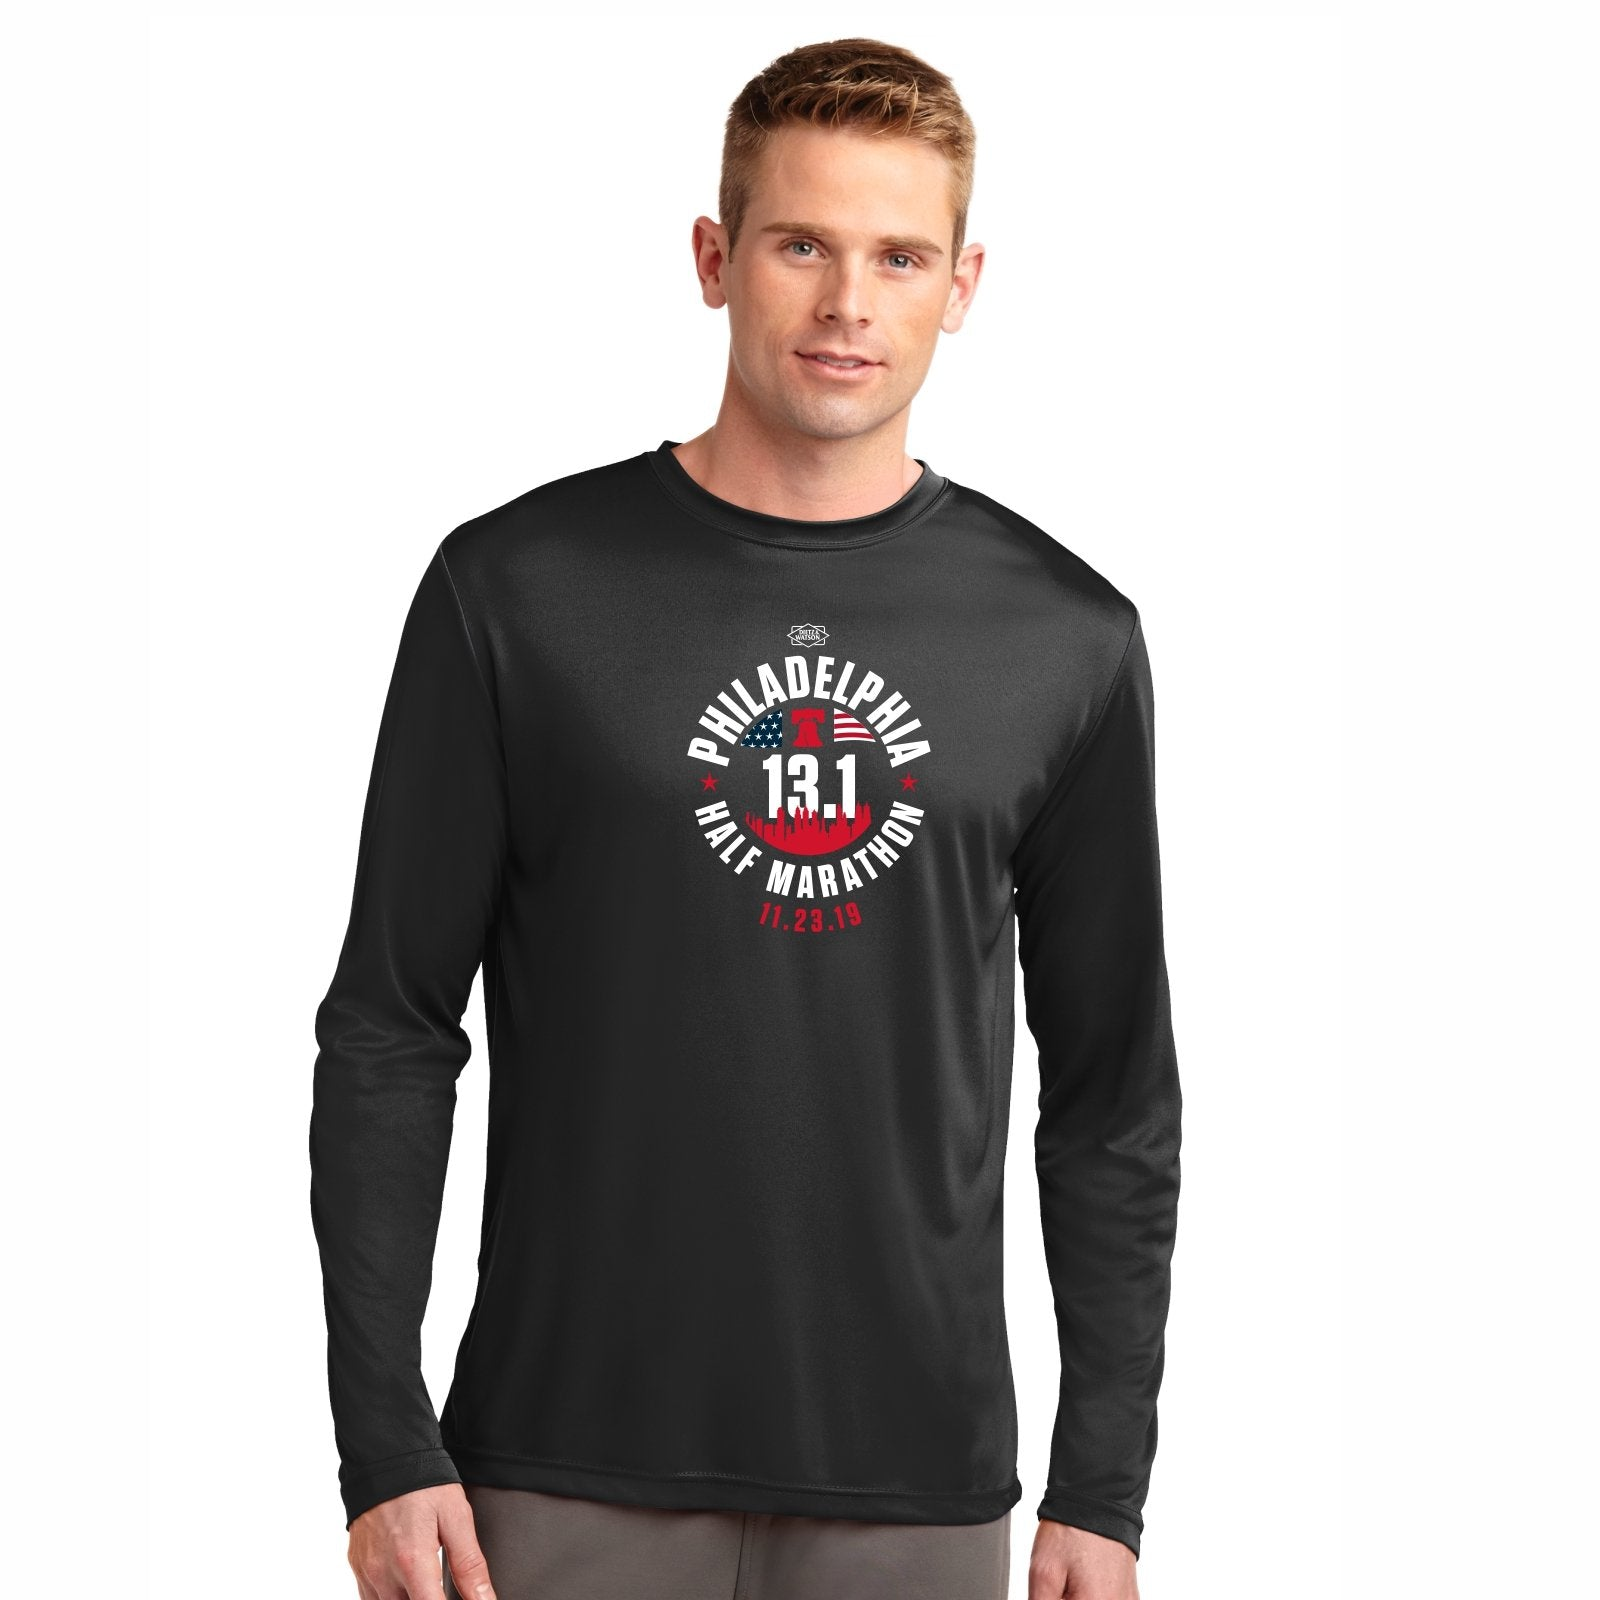 Men's LS Tech Tee -Black 'Course 2019 Design' - Dietz & Watson Philadelphia Half Marathon